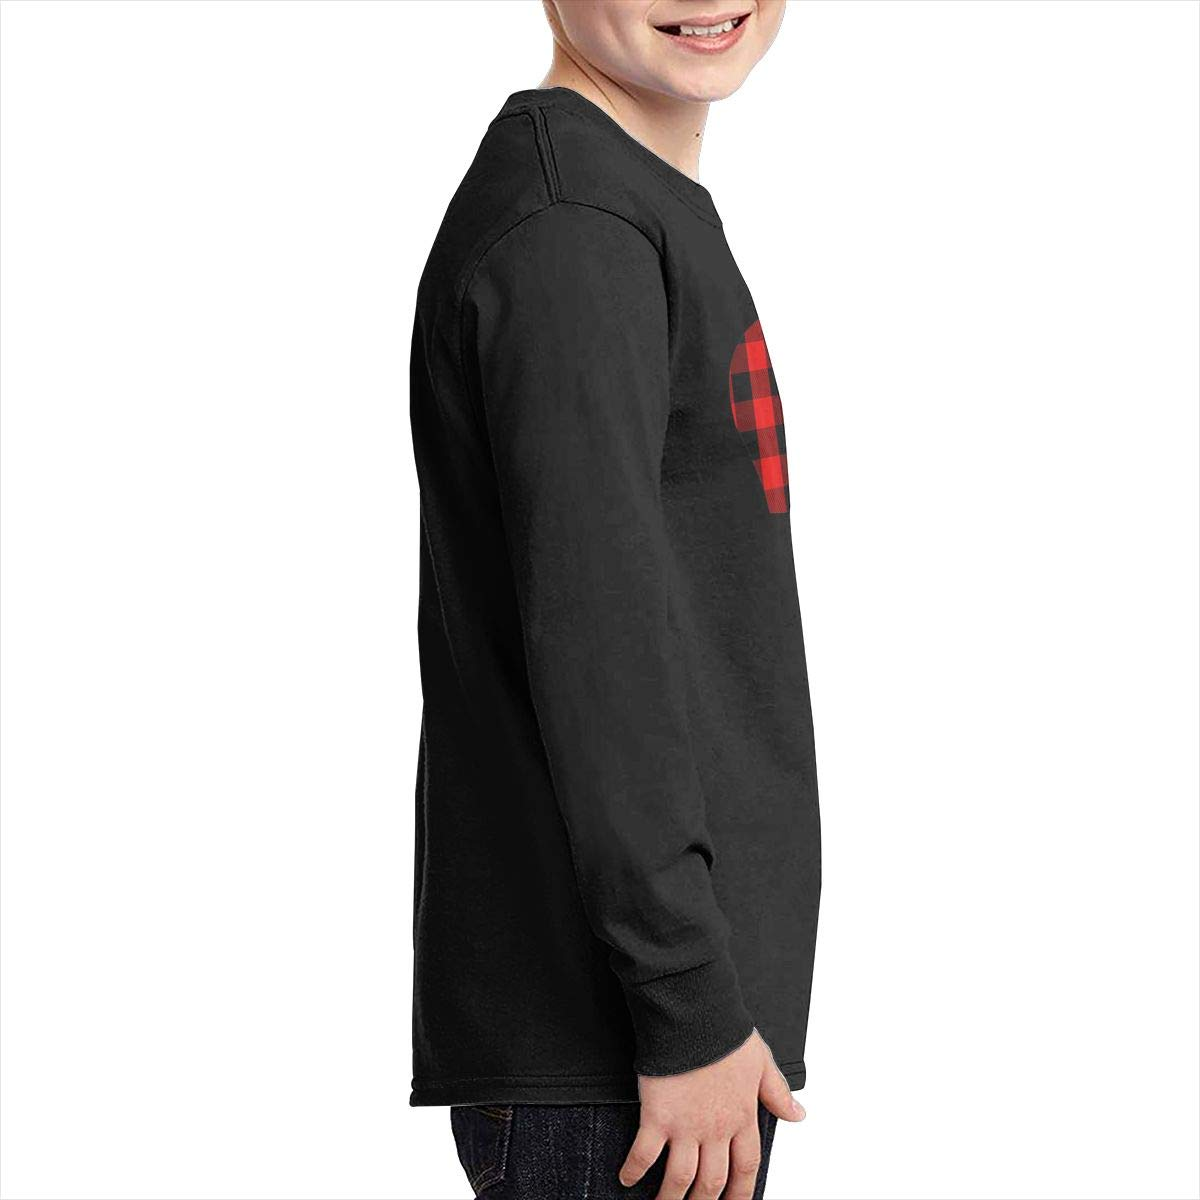 Red Buffalo Plaid Bear Youth Long Sleeve Moisture Wicking Athletic T Shirts Casual Tee Graphic Tops for Teen Boys Girls